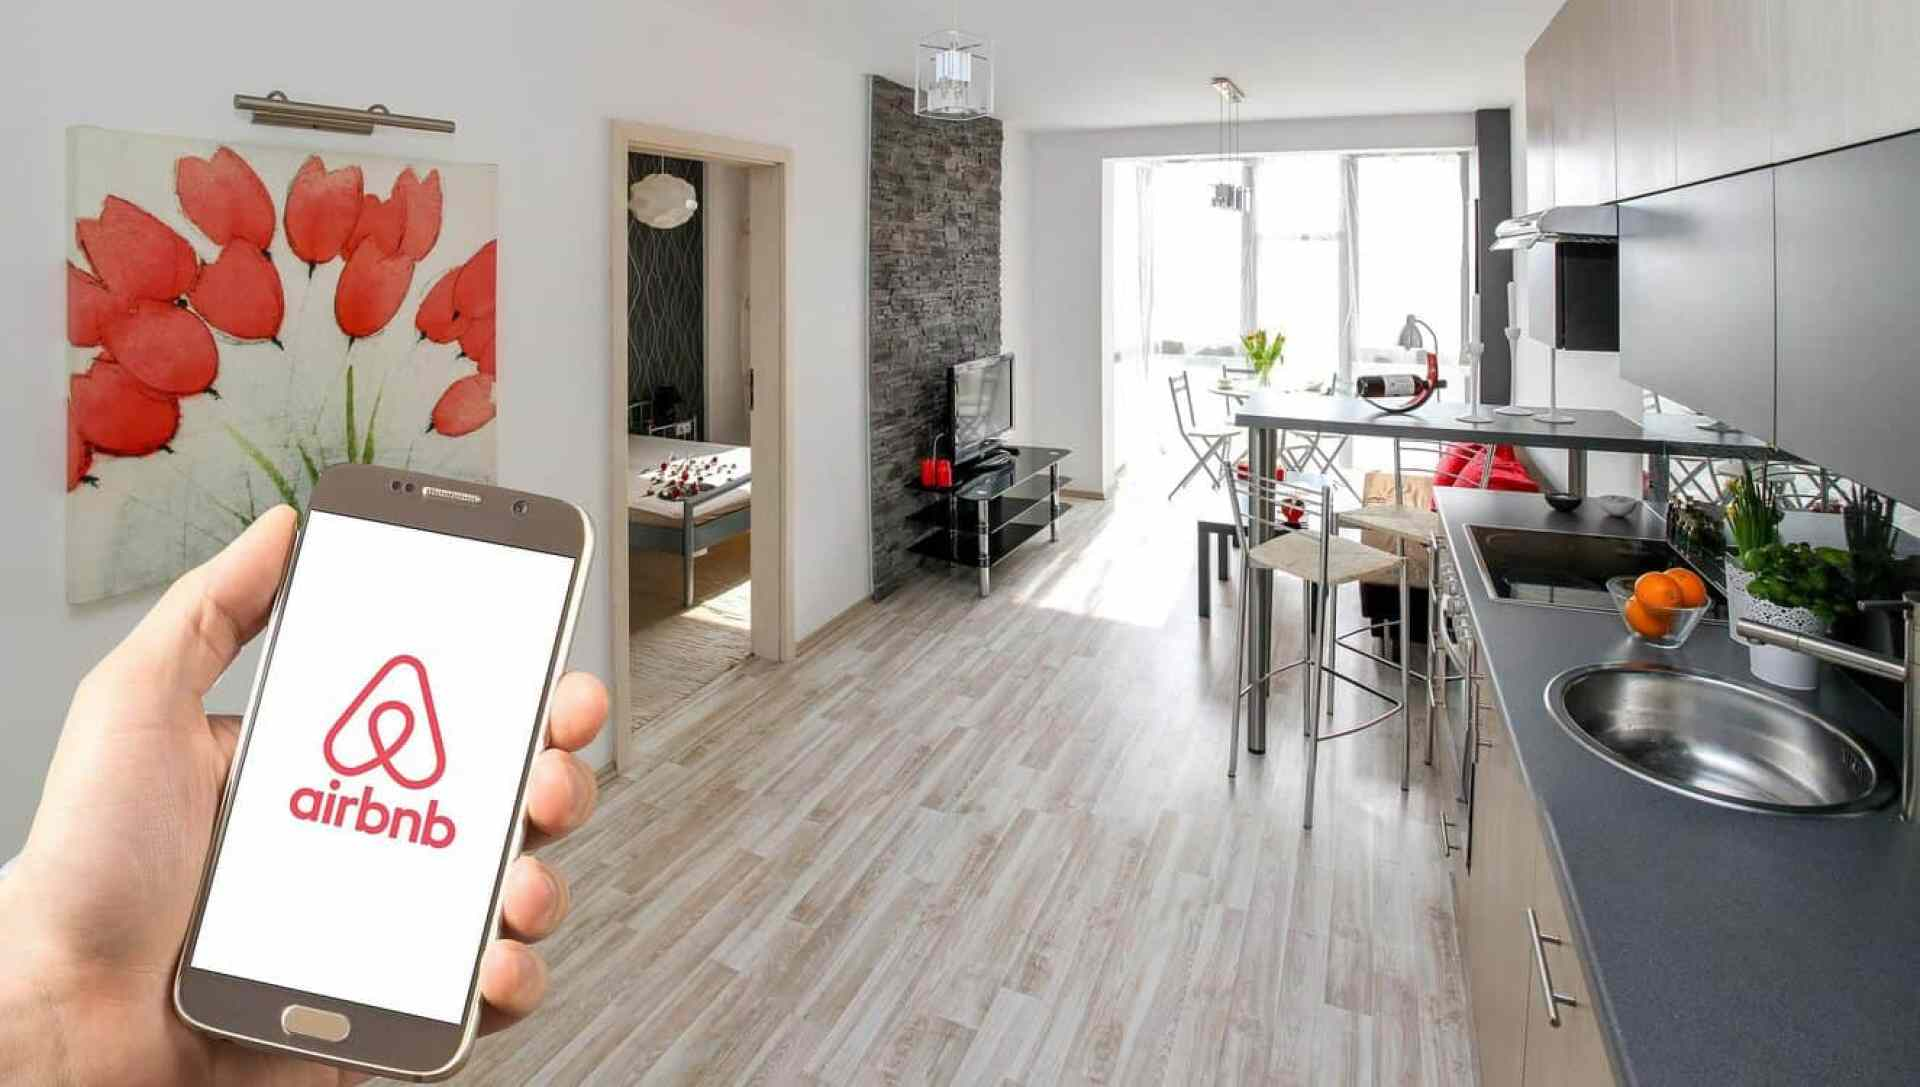 airbnb app on phone in an apartment